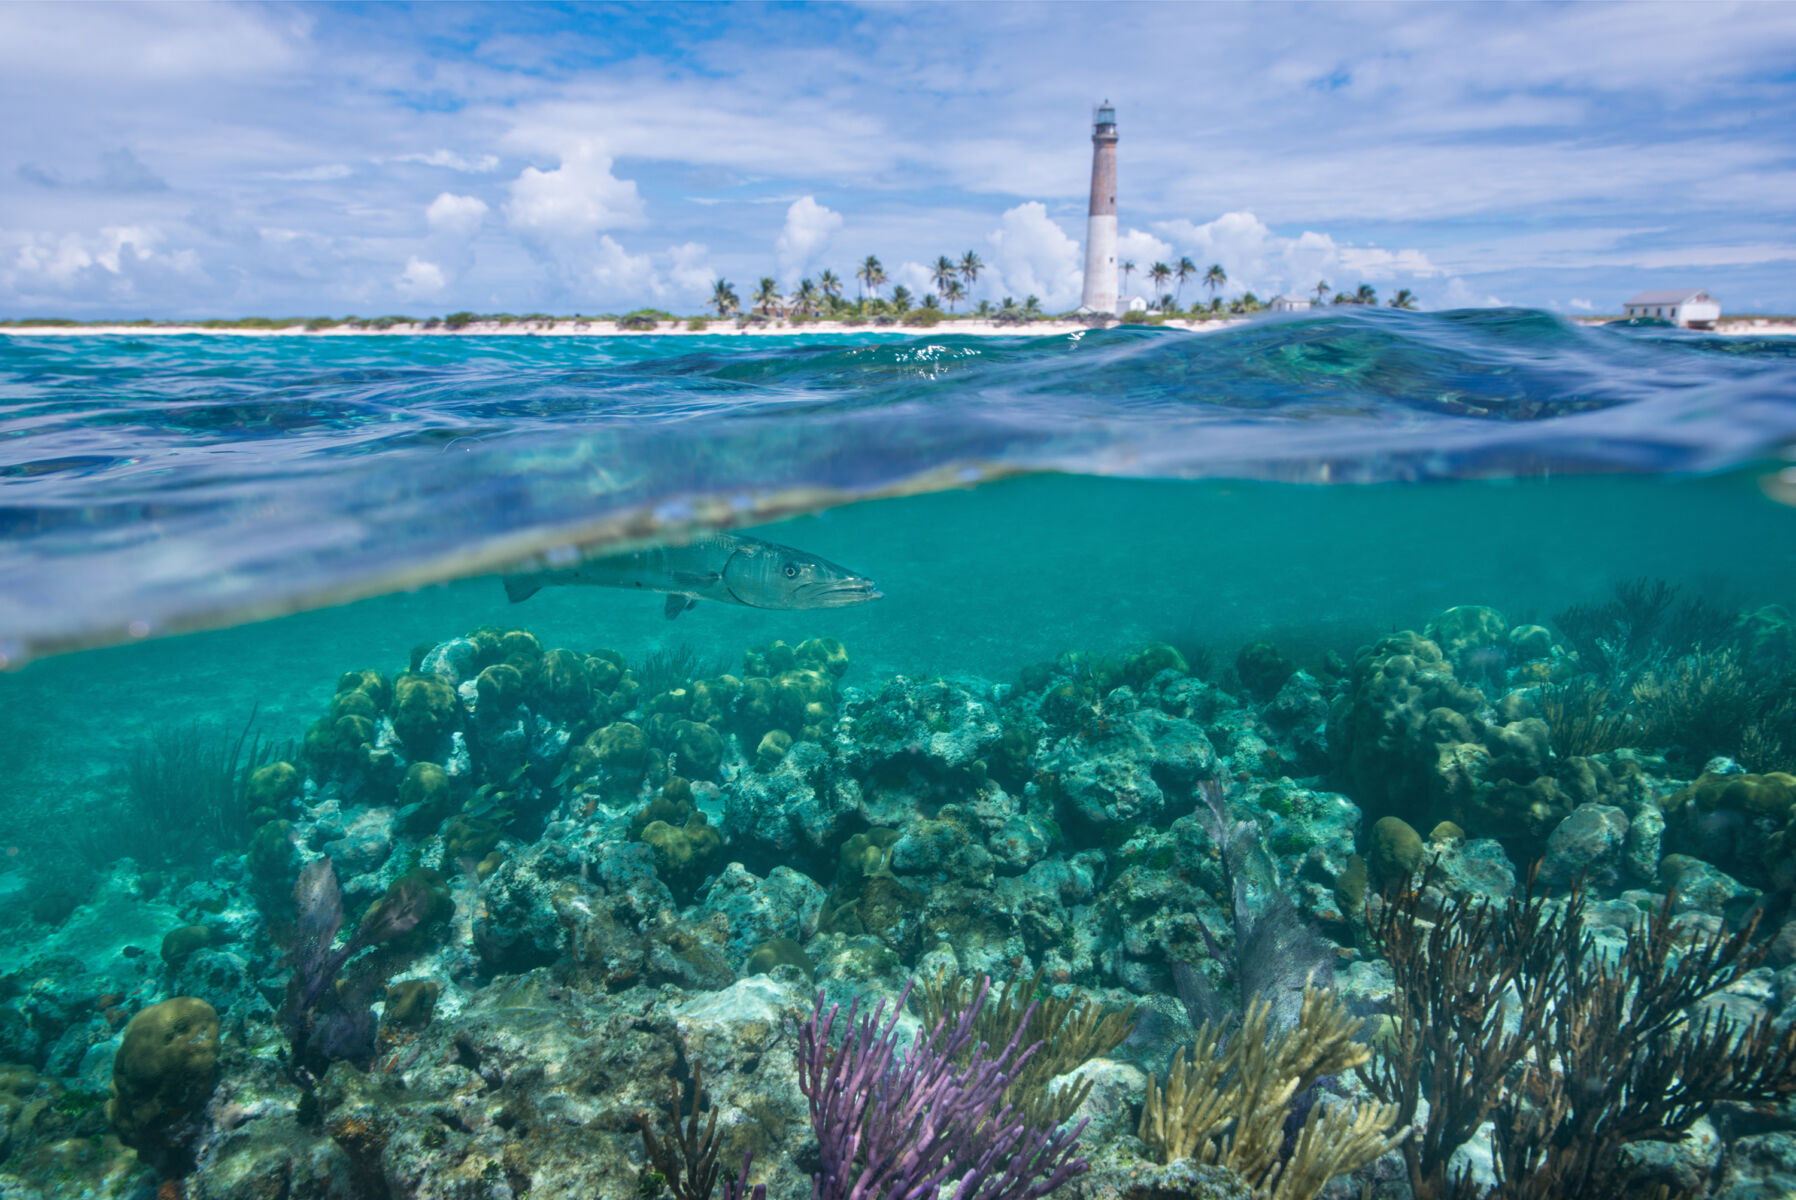 Beach scene showing underwater rocks as well as a wave and a light house in the distance surrounded by palm trees